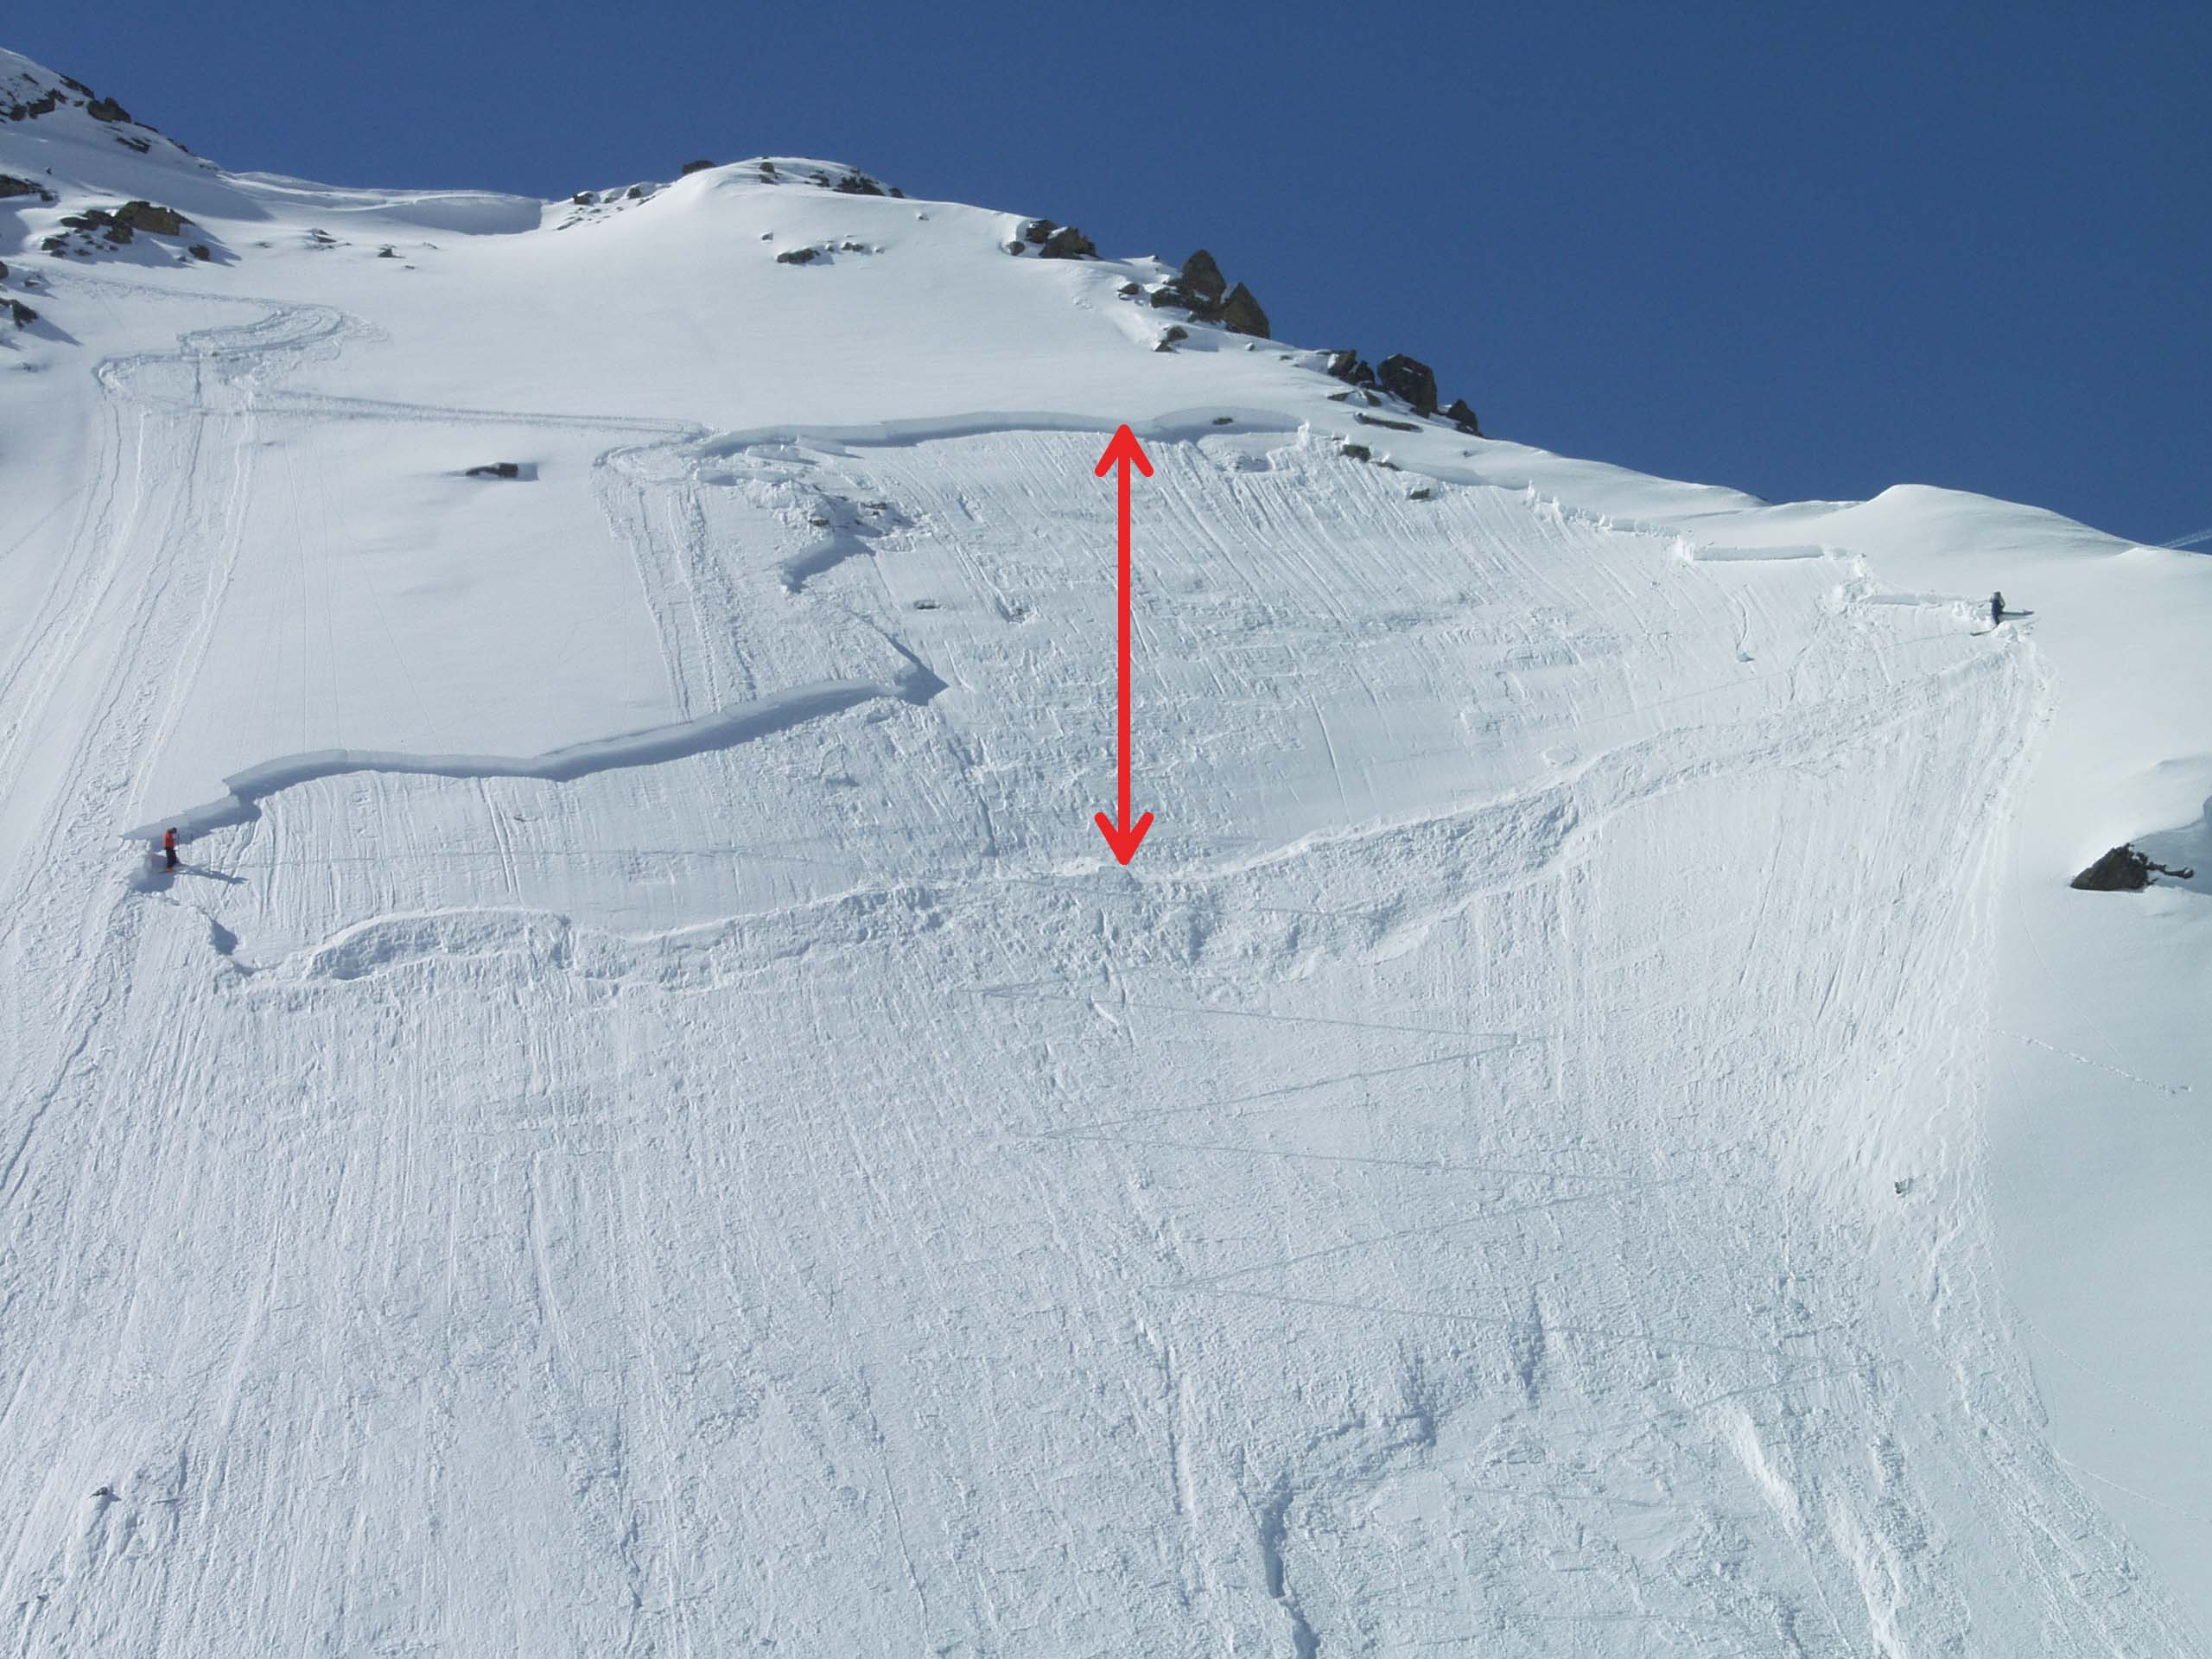 Glossary Size of the starting zone LWD Tirol | EAWS European Avalanche Warning Services